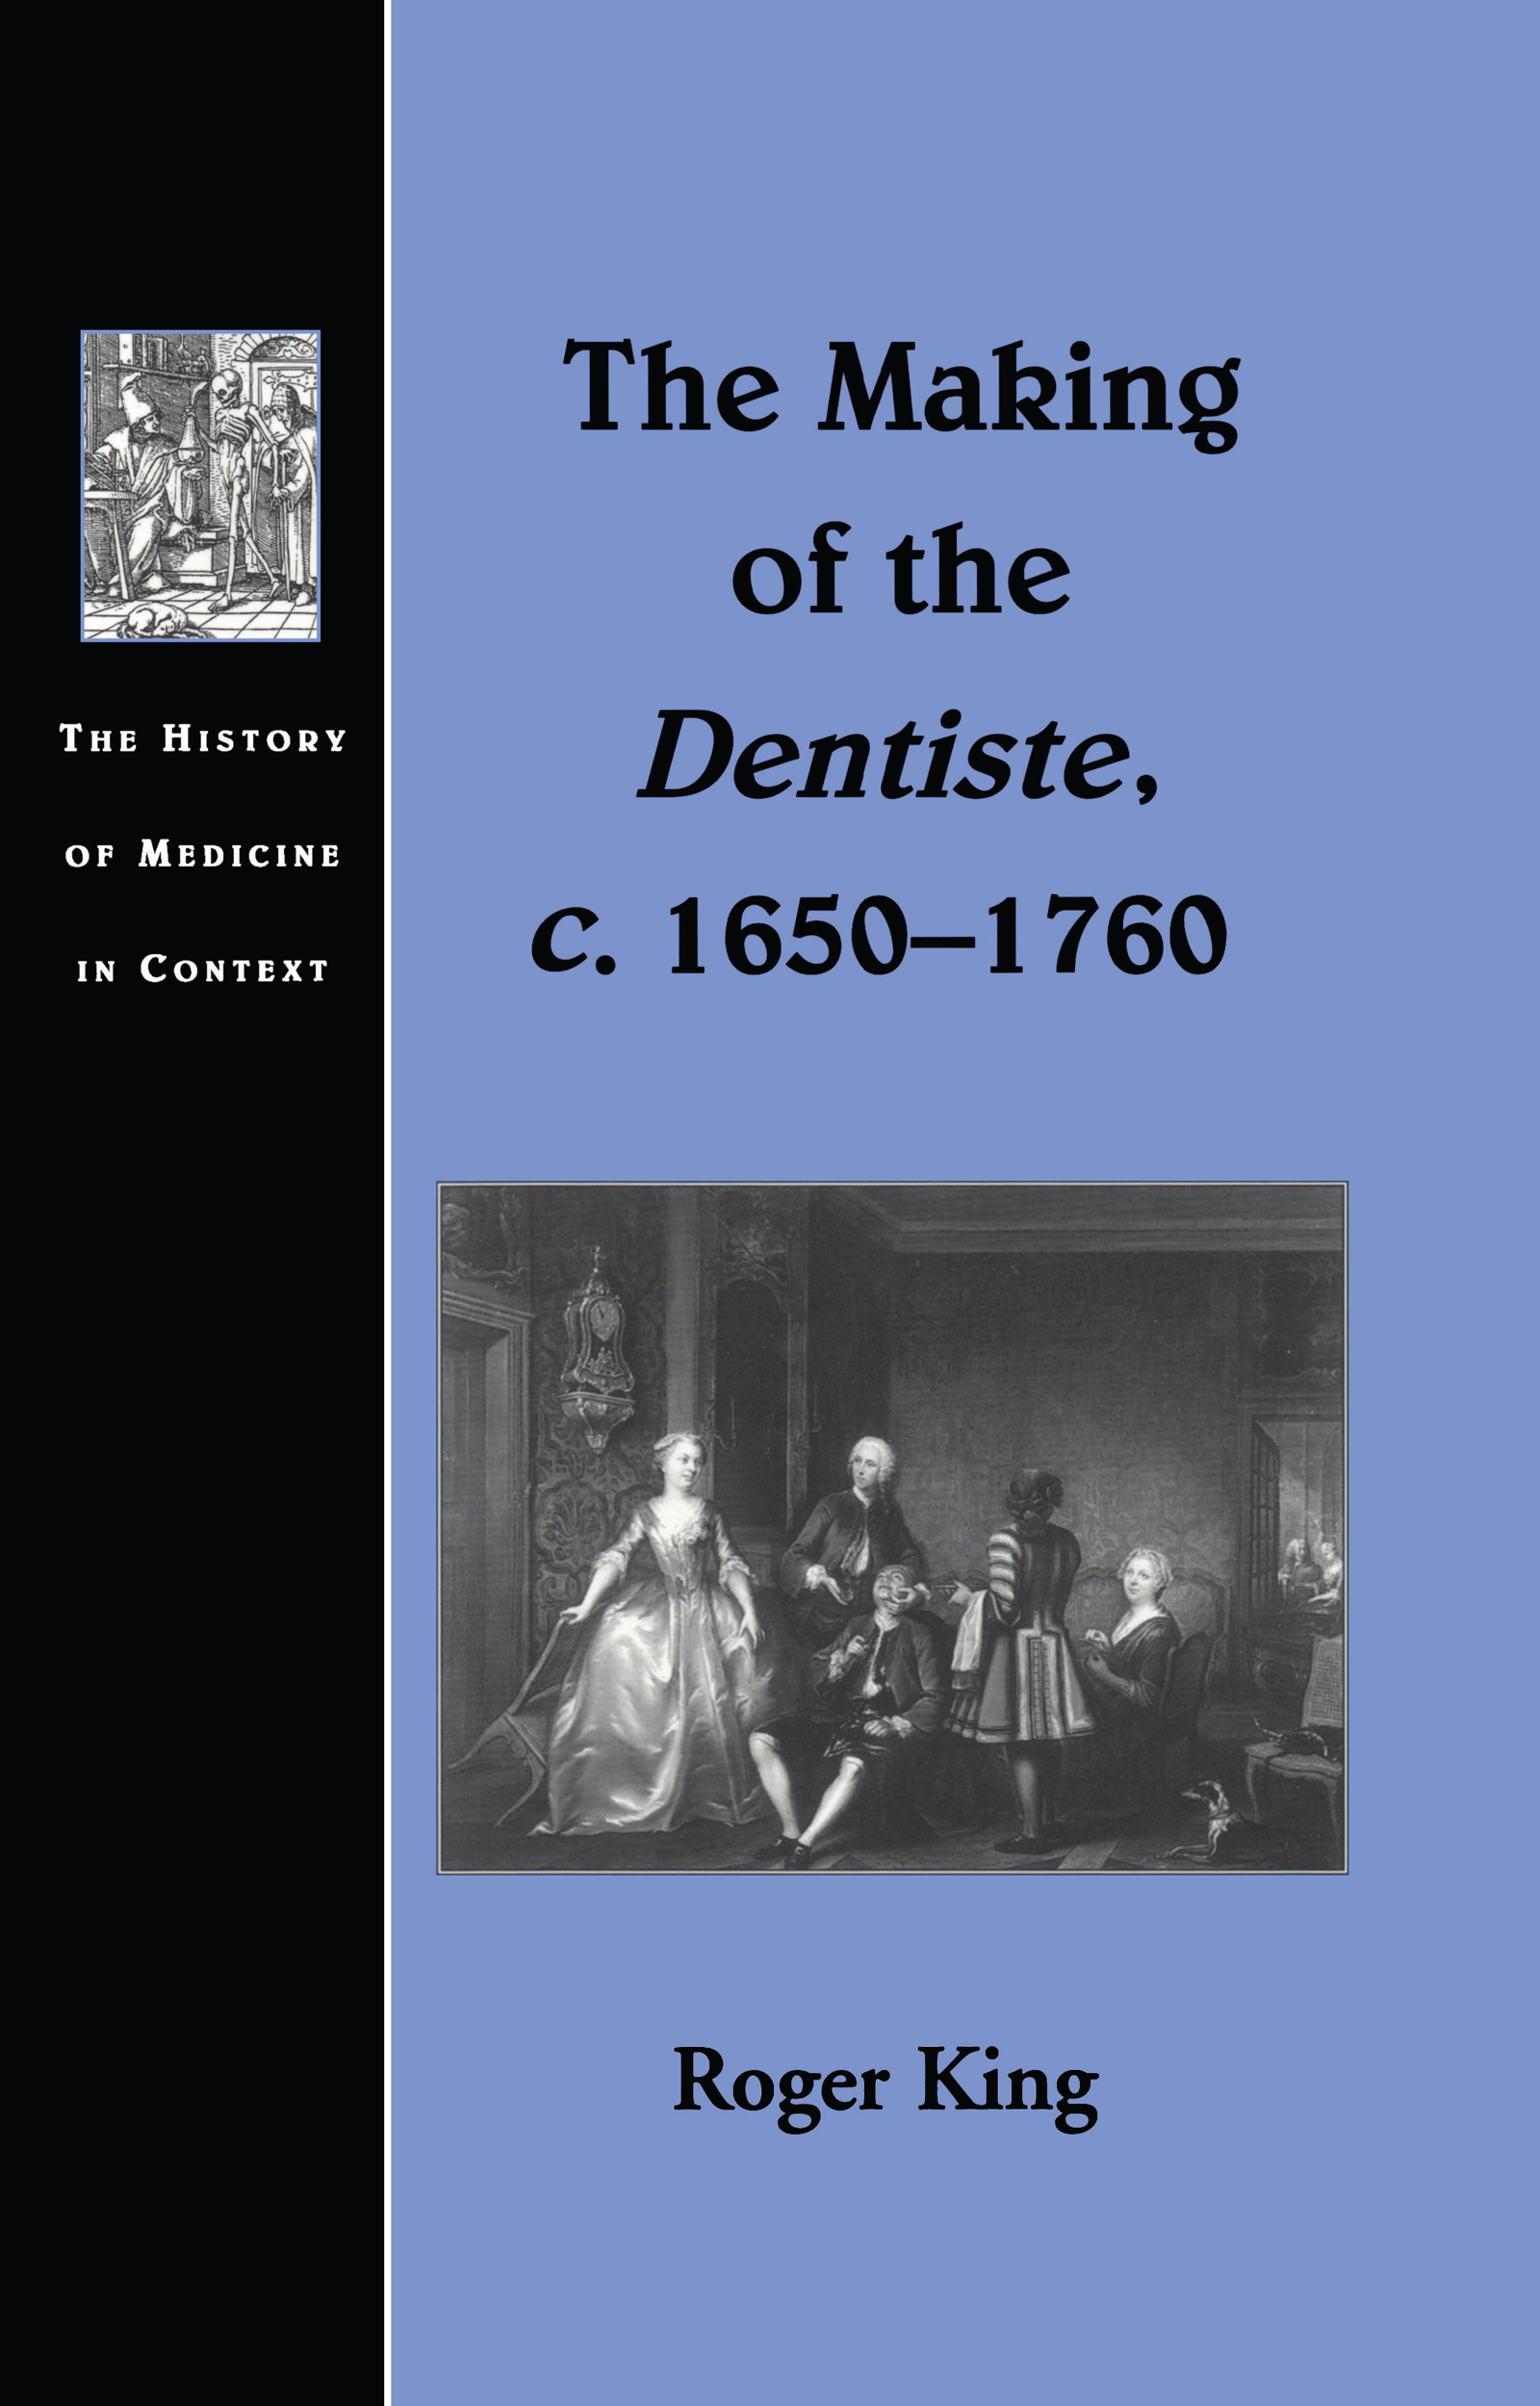 The Making of the Dentiste, c. 1650-1760